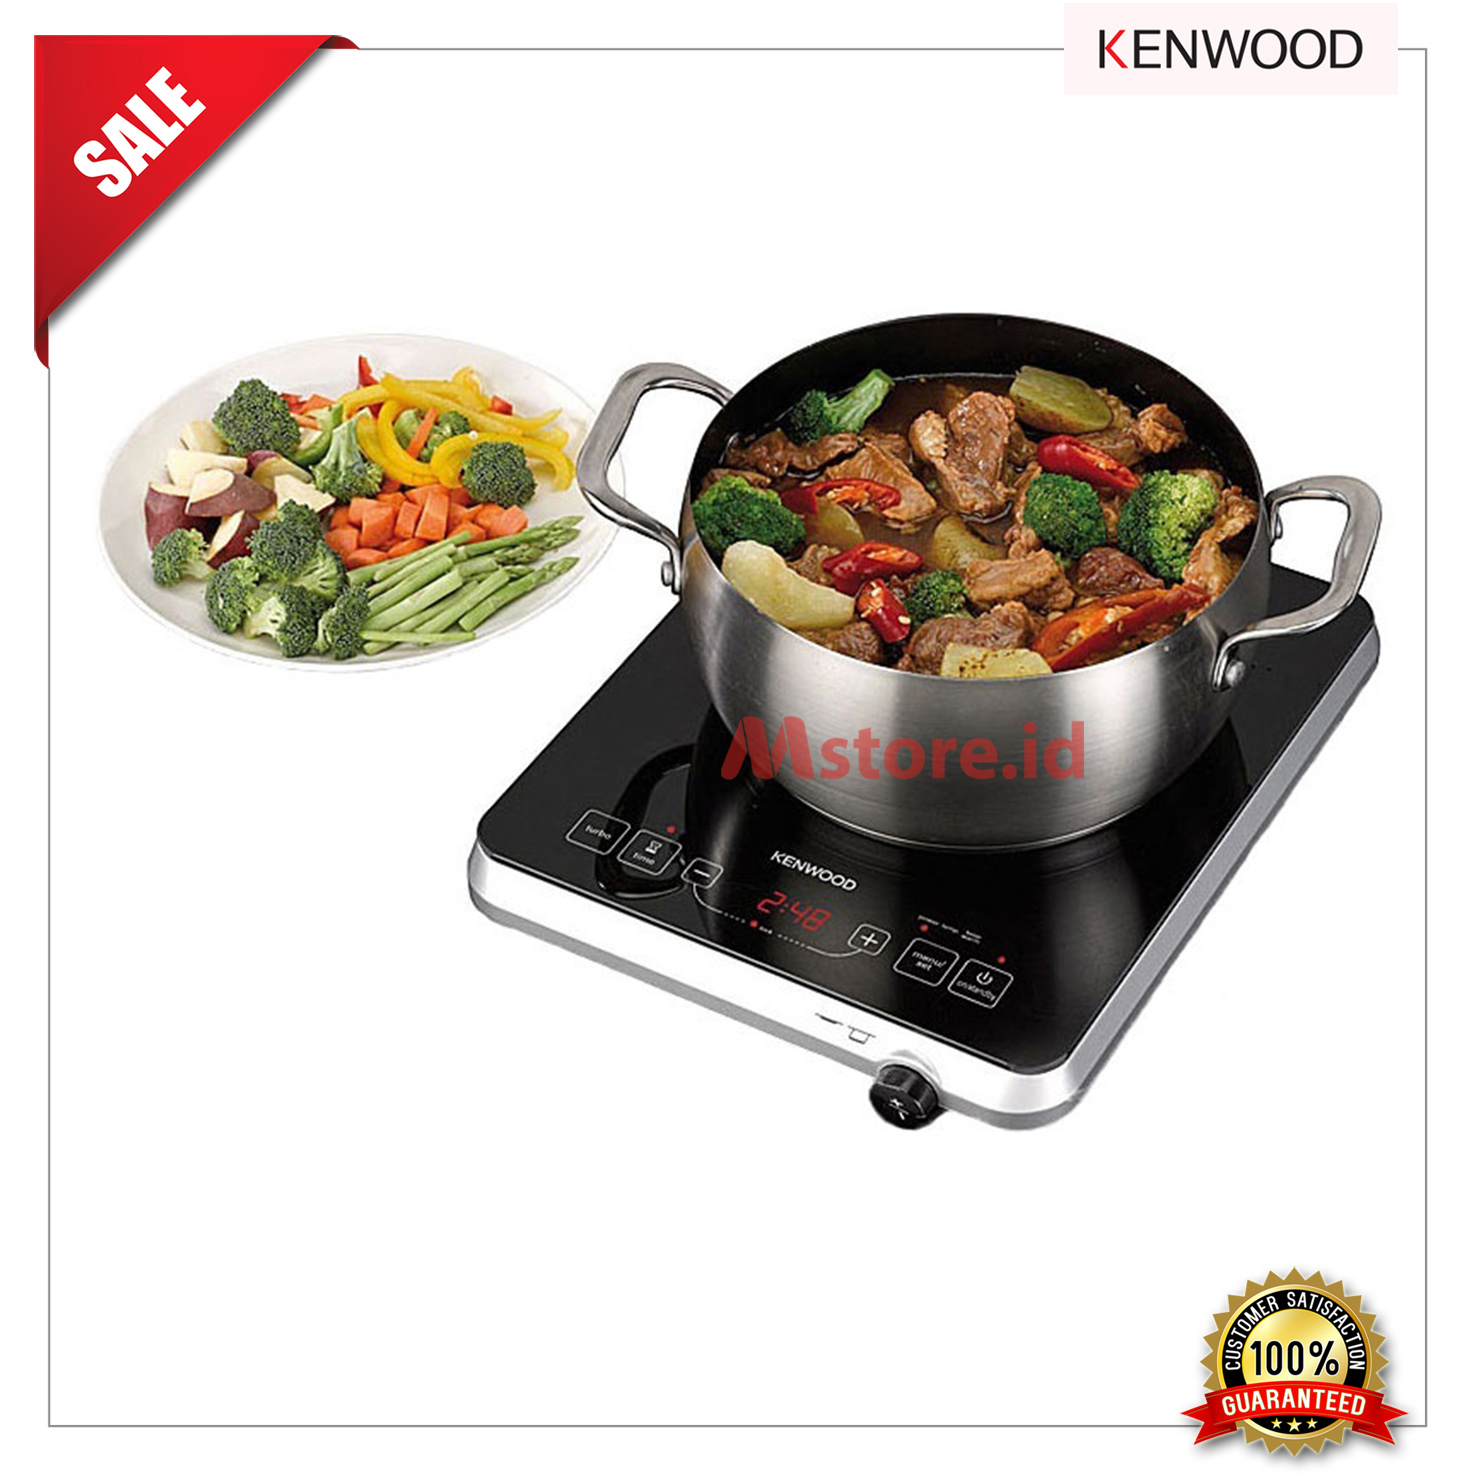 Kenwood Induction Hob IH470_kompor induksi_kenwood_m-store id_multimayaka_2